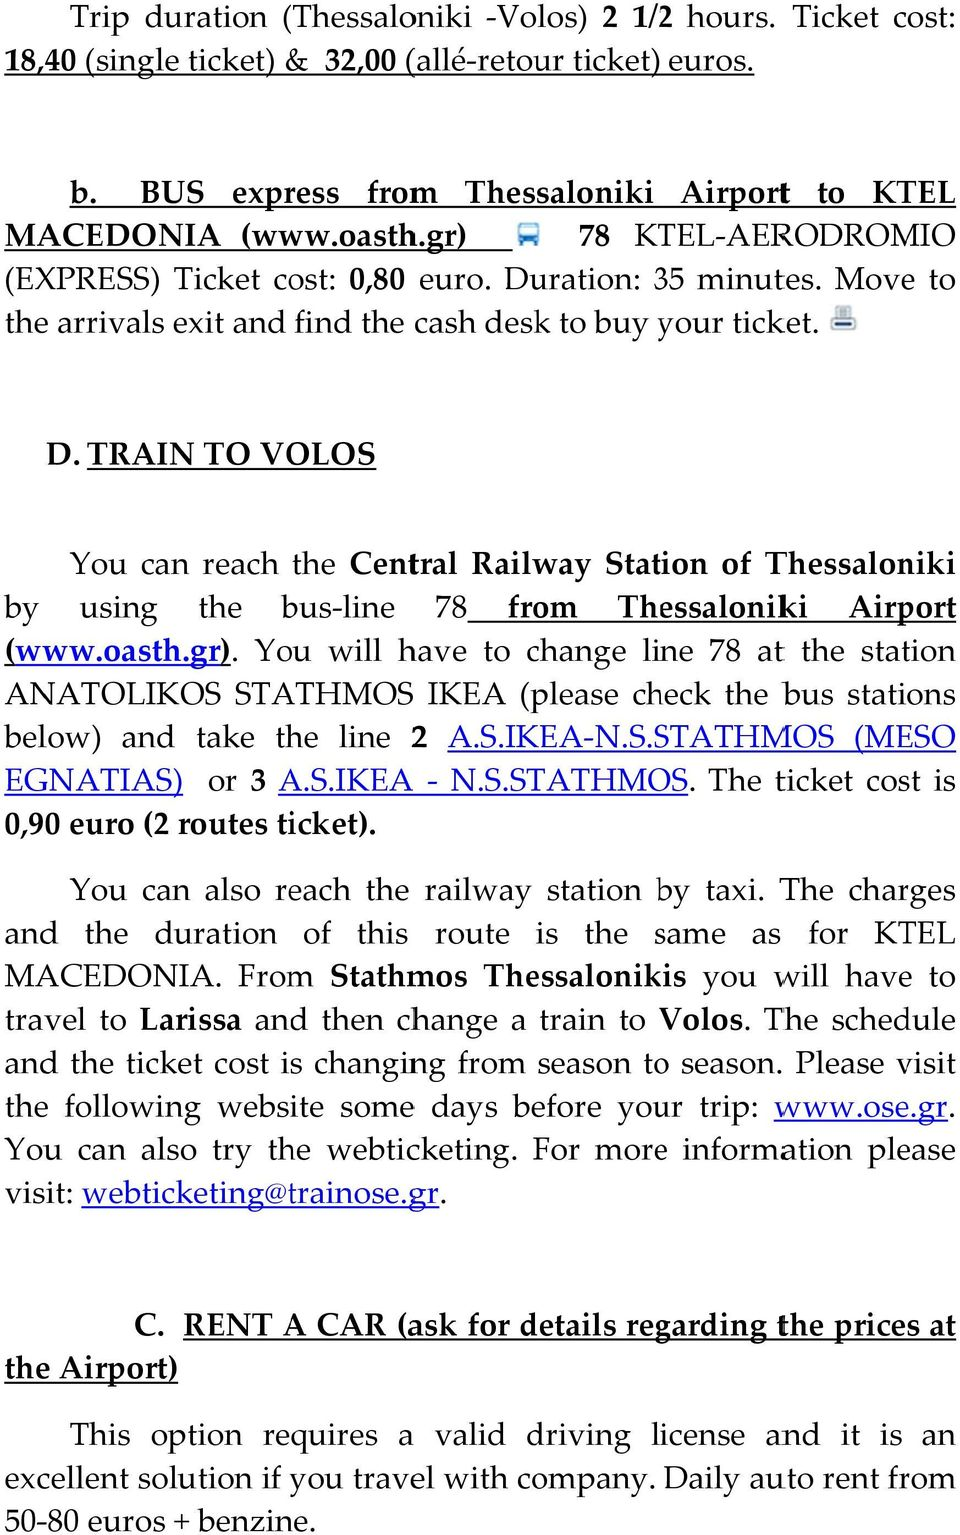 oasth.gr). You will have to change line 78 att station ANATOLIKOS STATHMOSS IKEA (please check bus stations below) and take line 2 A.S.IKEA N.S.STATHMOS (MESO EGNATIAS) or 3 A.S.IKEA A N.S.STATHMOS. The ticket cost is 0,90 euro (2 routes ticket).